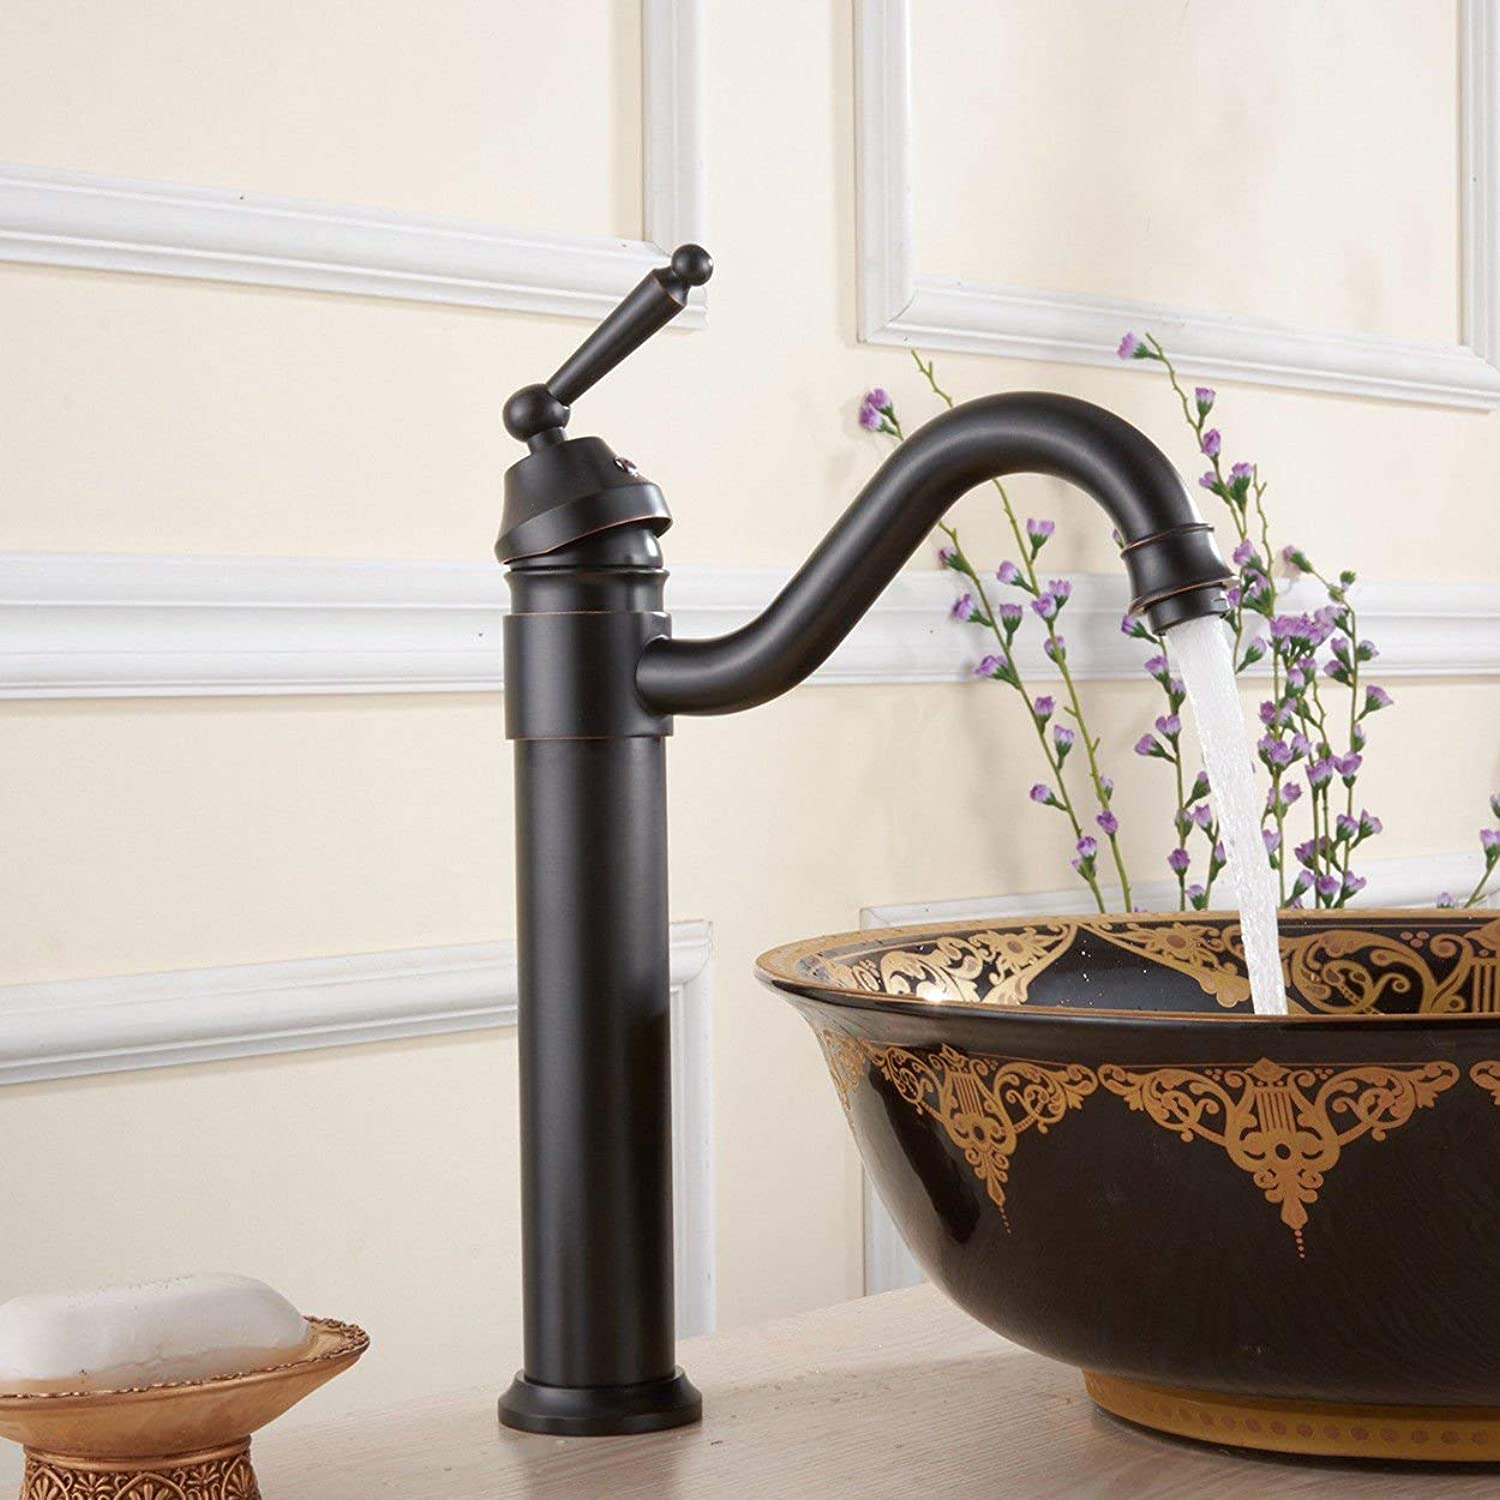 NANIH home Sink Mixer Tap Bathroom Kitchen Basin Tap Leakproof Save Water Copper Black Ancient Retro Hot And Cold Single Hole Plus High Kitchen